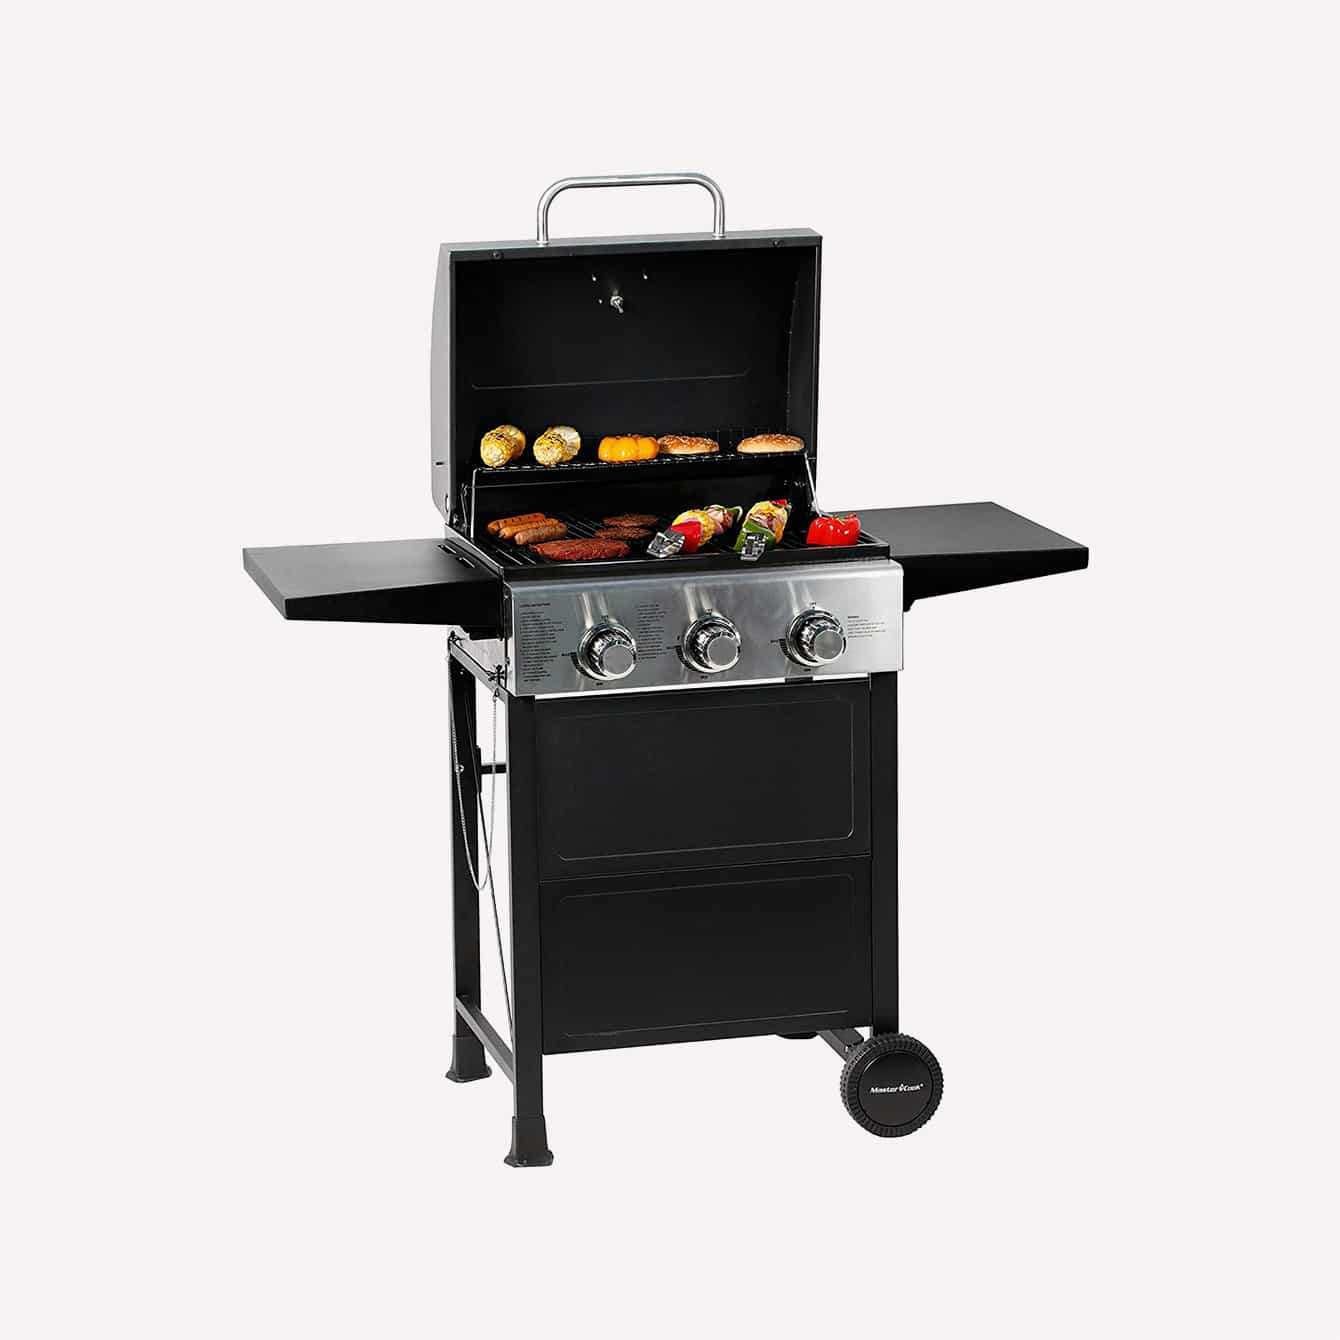 MASTER COOK 3 Burner BBQ Propane Gas Grill, Stainless Steel 30,000 BTU Patio Garden Barbecue Grill with Two Foldable Shelves 2